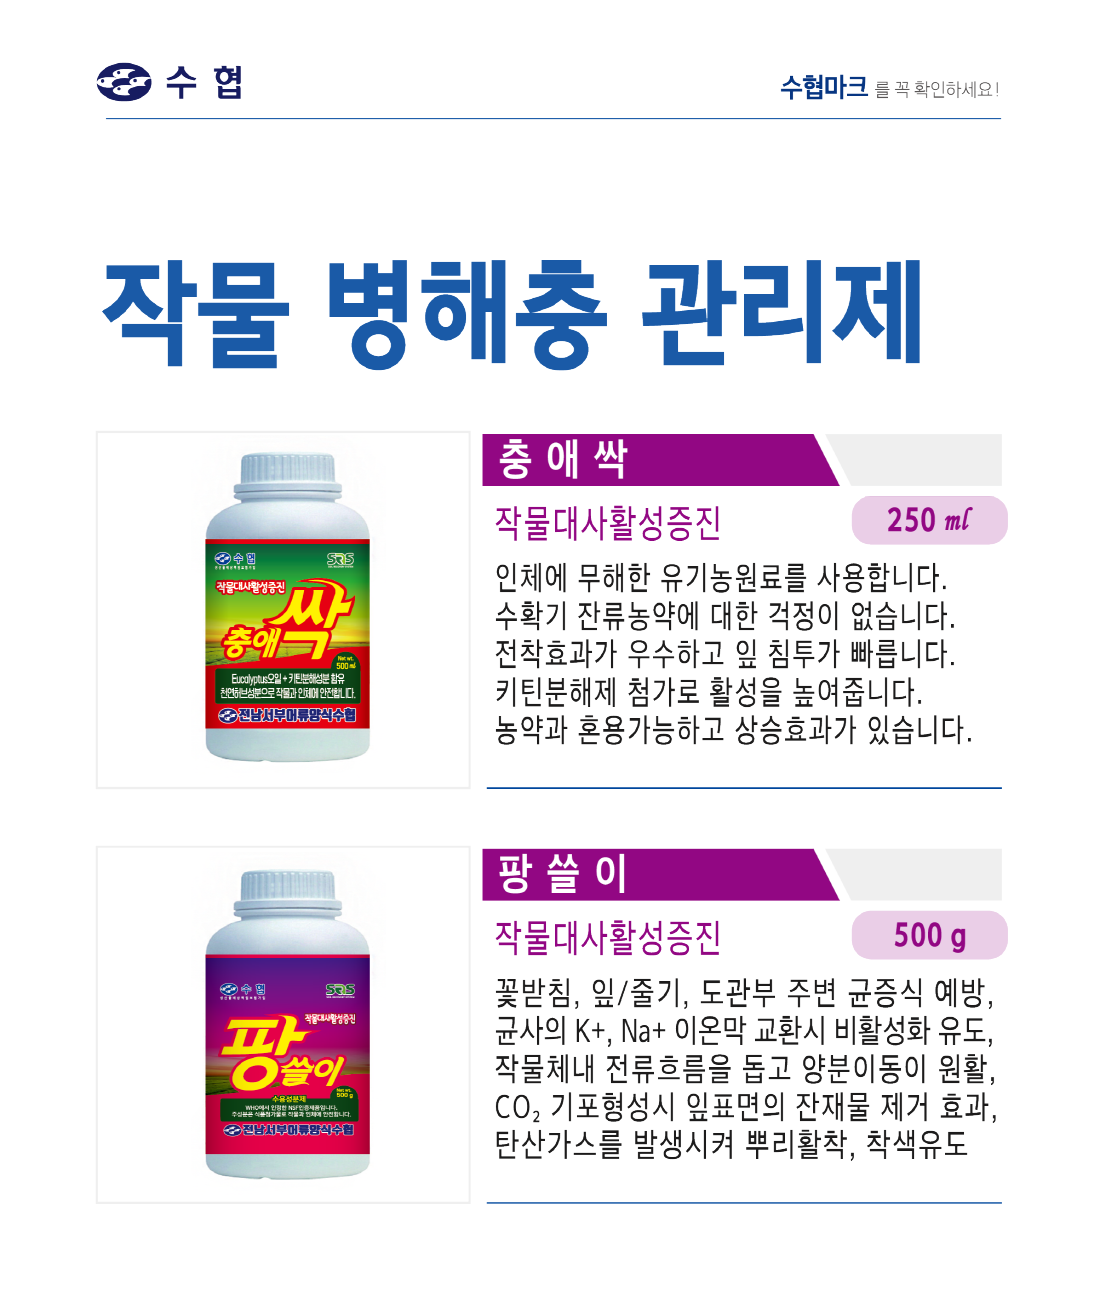 http://suhyup2019.handpr.kr/bs/se2/imgup/1589964562det2_s.png